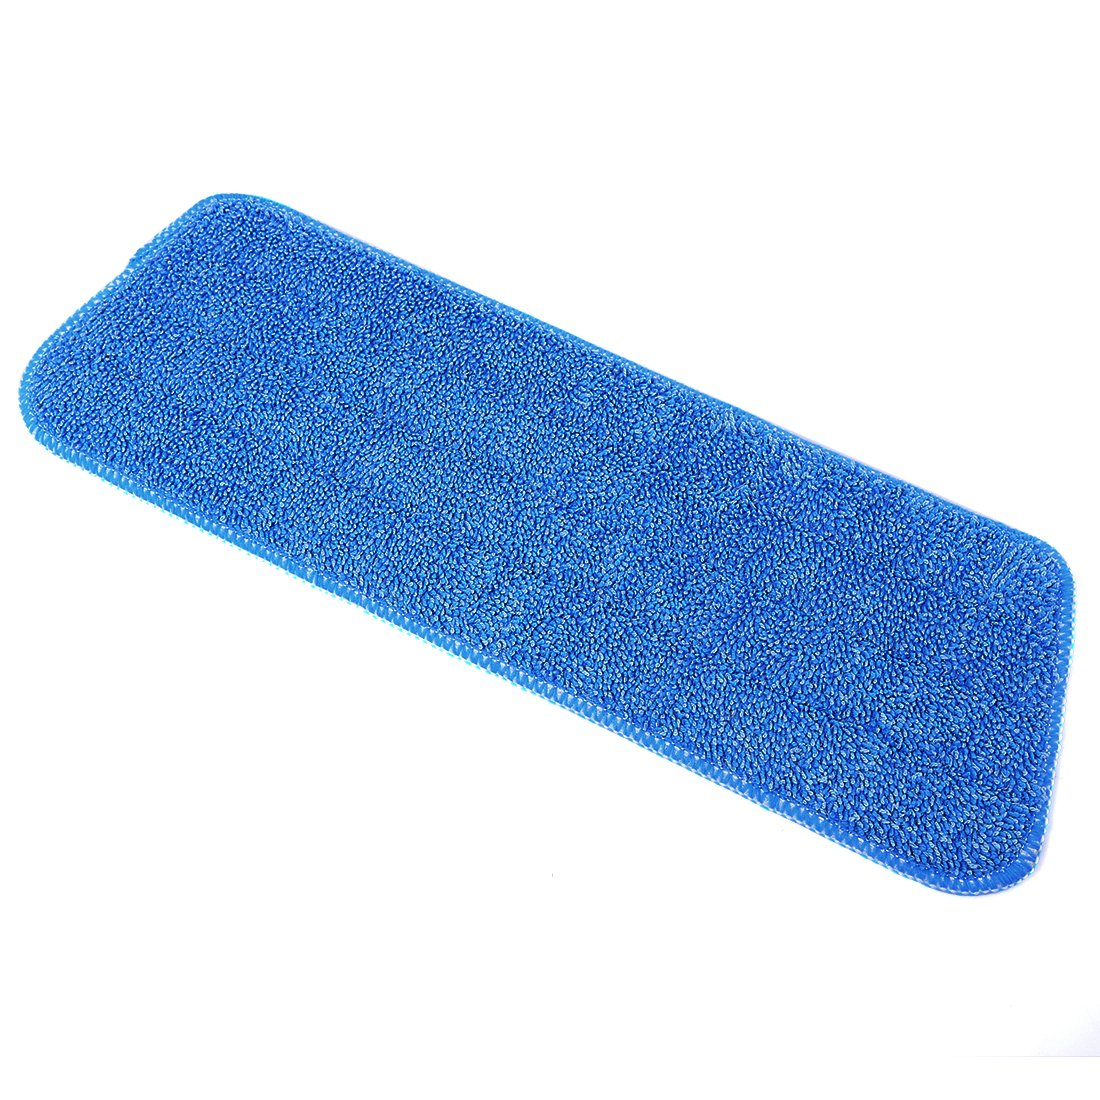 Microfiber Mop Pads, Yamix Set of 10 Hardwood and Floor Microfiber Spray Mop Pads Cleaning Pad Mop Refill Replacement Heads for Wet/Dry Mops,Spray and Spin Magic Mop - Blue by Yamix (Image #6)